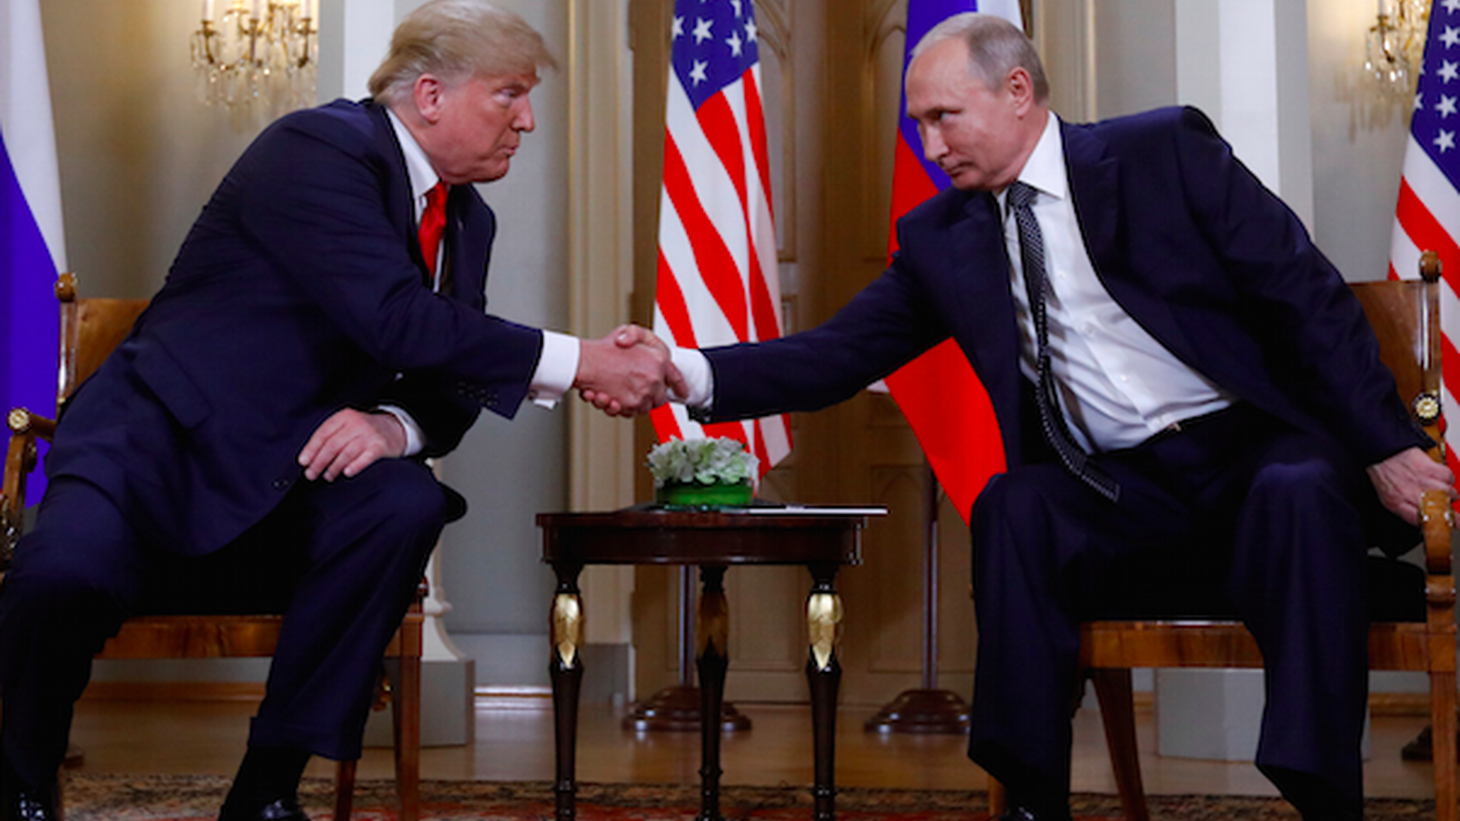 """President Trump today says he misspoke at yesterday's disastrous news conference with Vladimir Putin. He explained that he said """"would"""" instead of """"wouldn't."""" Why wouldn't it be Russia who meddled in the election?"""